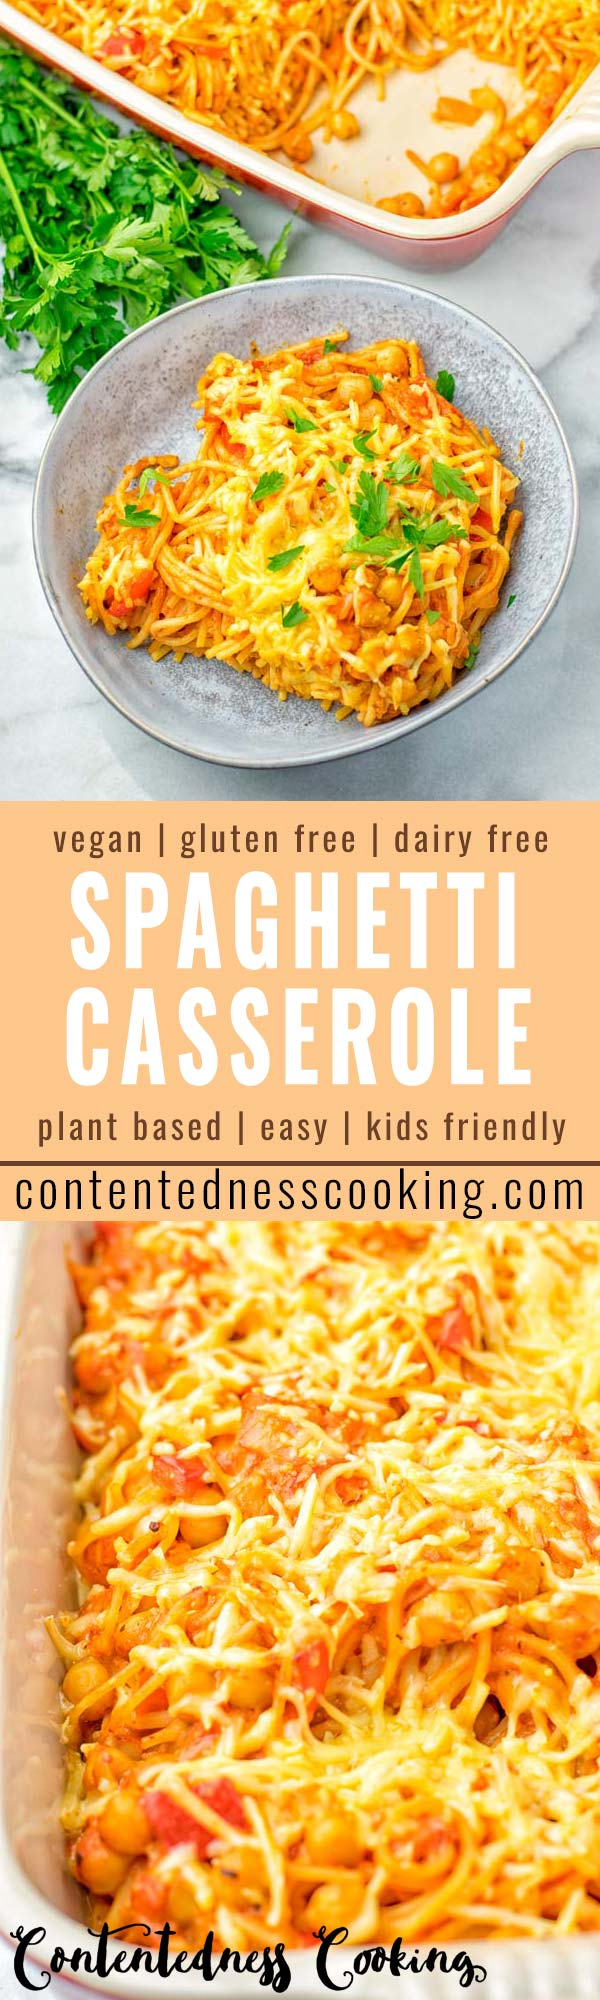 This Spaghetti Casserole is entirely vegan and gluten free. It's super easy to make and super satisfying for all your dinner, lunch meal prep, work lunch ideas, kid friendly means that the whole family will love. Once you've tried it you know you wanna eat it every day. #vegan #dairyfree #glutenfree #vegetarian #contentednesscooking #spaghetticasserole #dinner #lunch #mealprep #worklunchideas #kidfriendlydinners #familydinnerideas #quickeasydinner